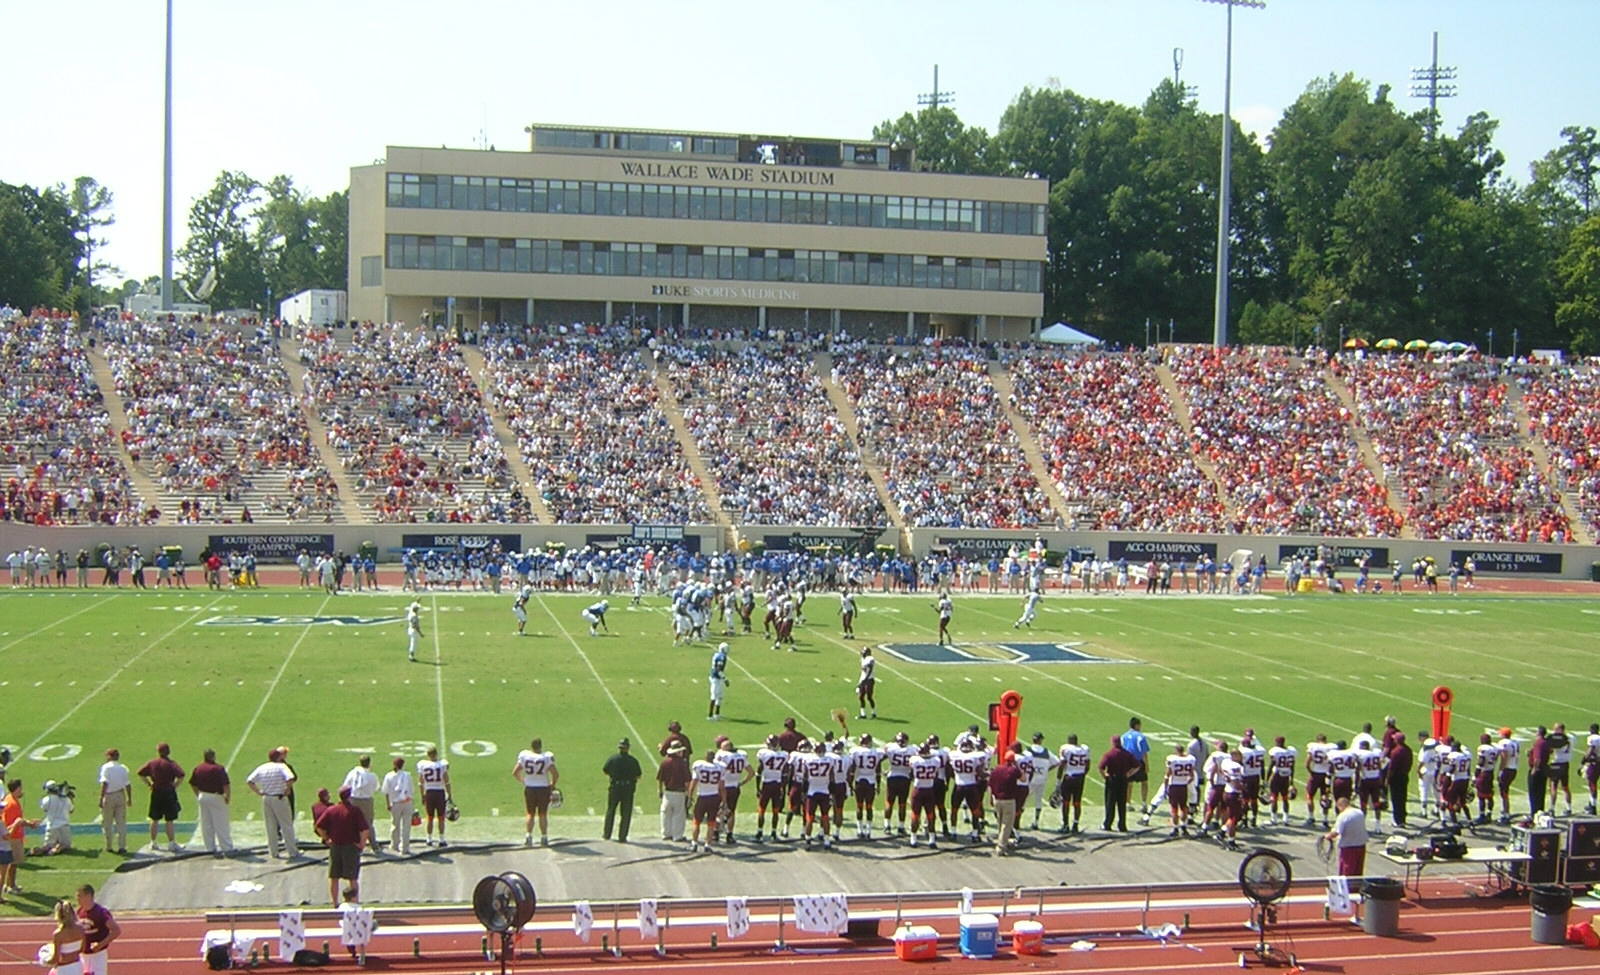 Description Wallace Wade Stadium 2005 Virginia Tech at Duke.jpg